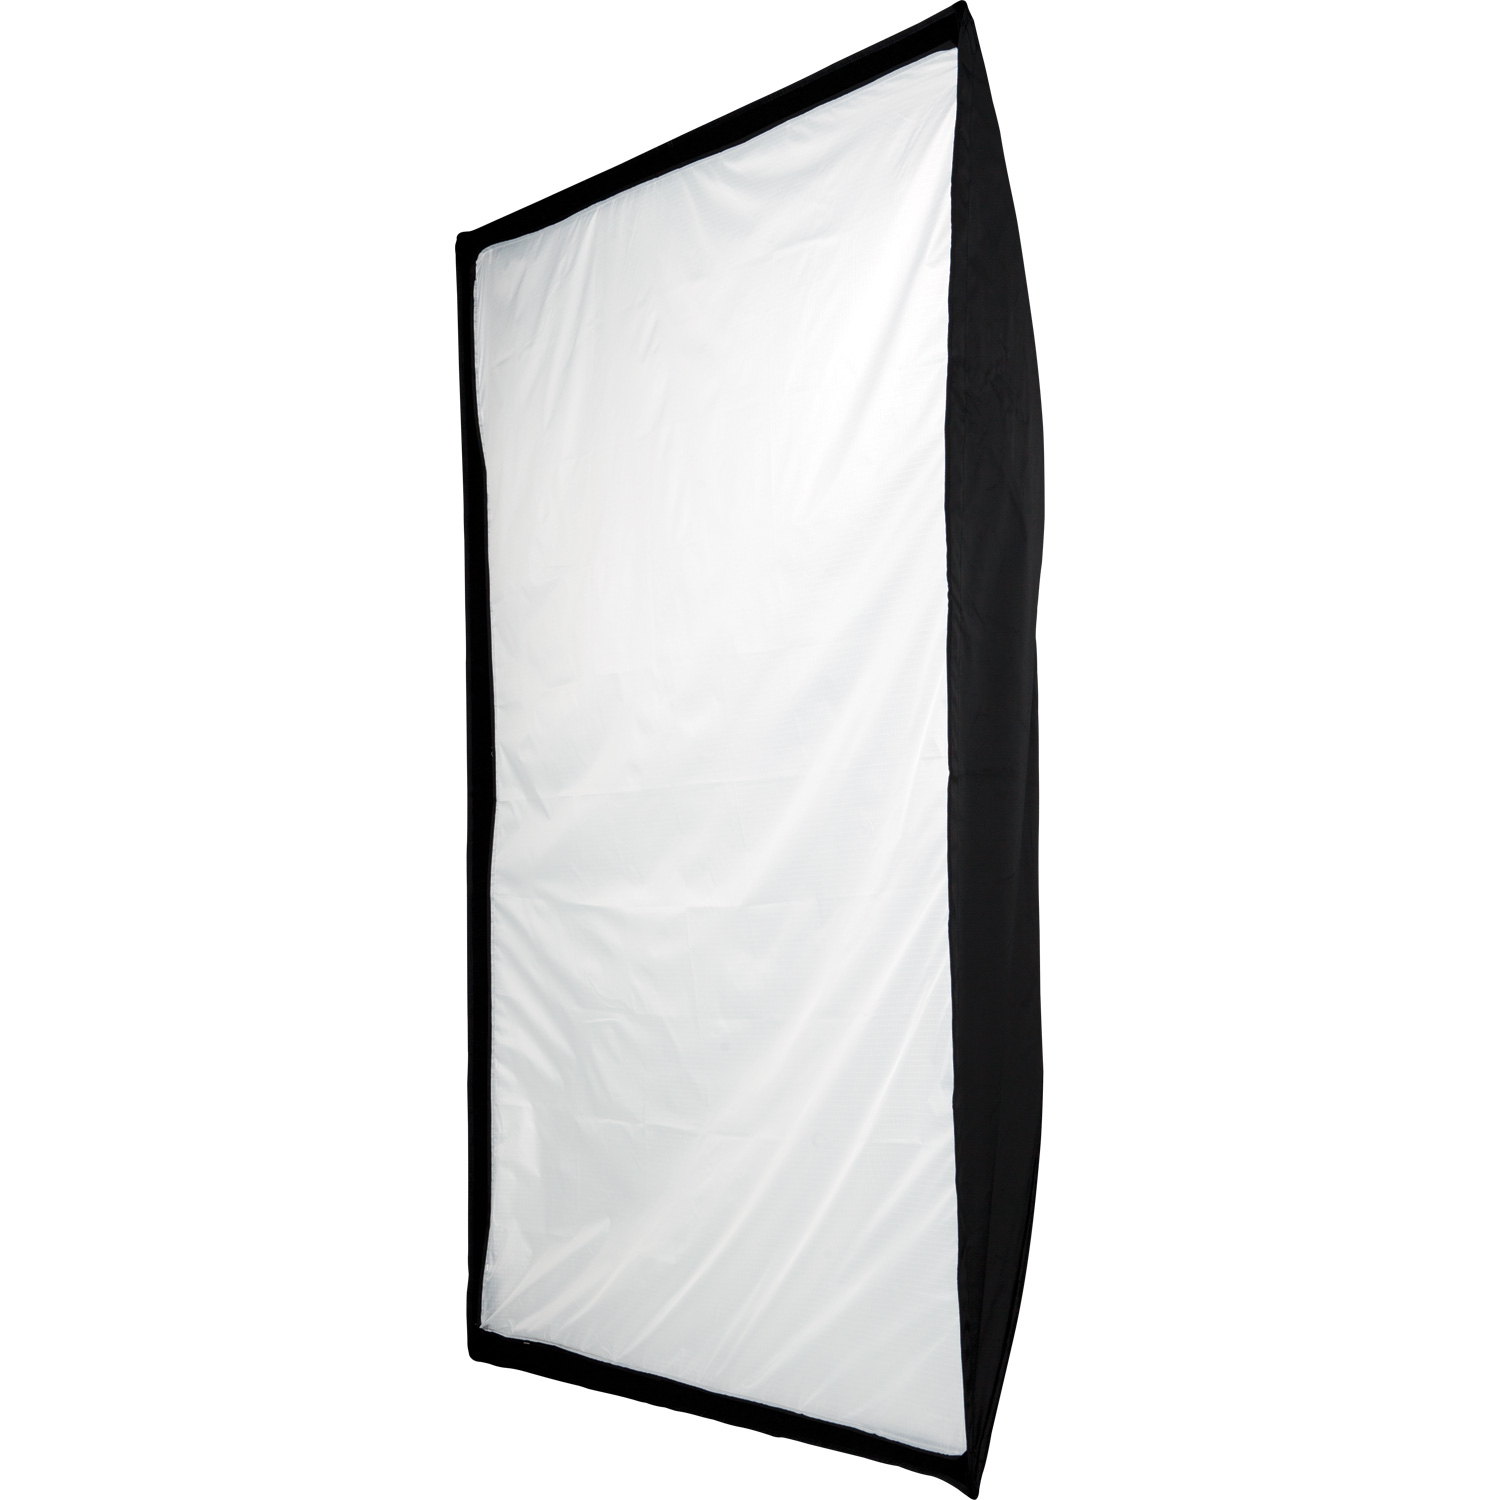 Pro 54-in. x 72-in. Shallow Softbox with Silver Interior